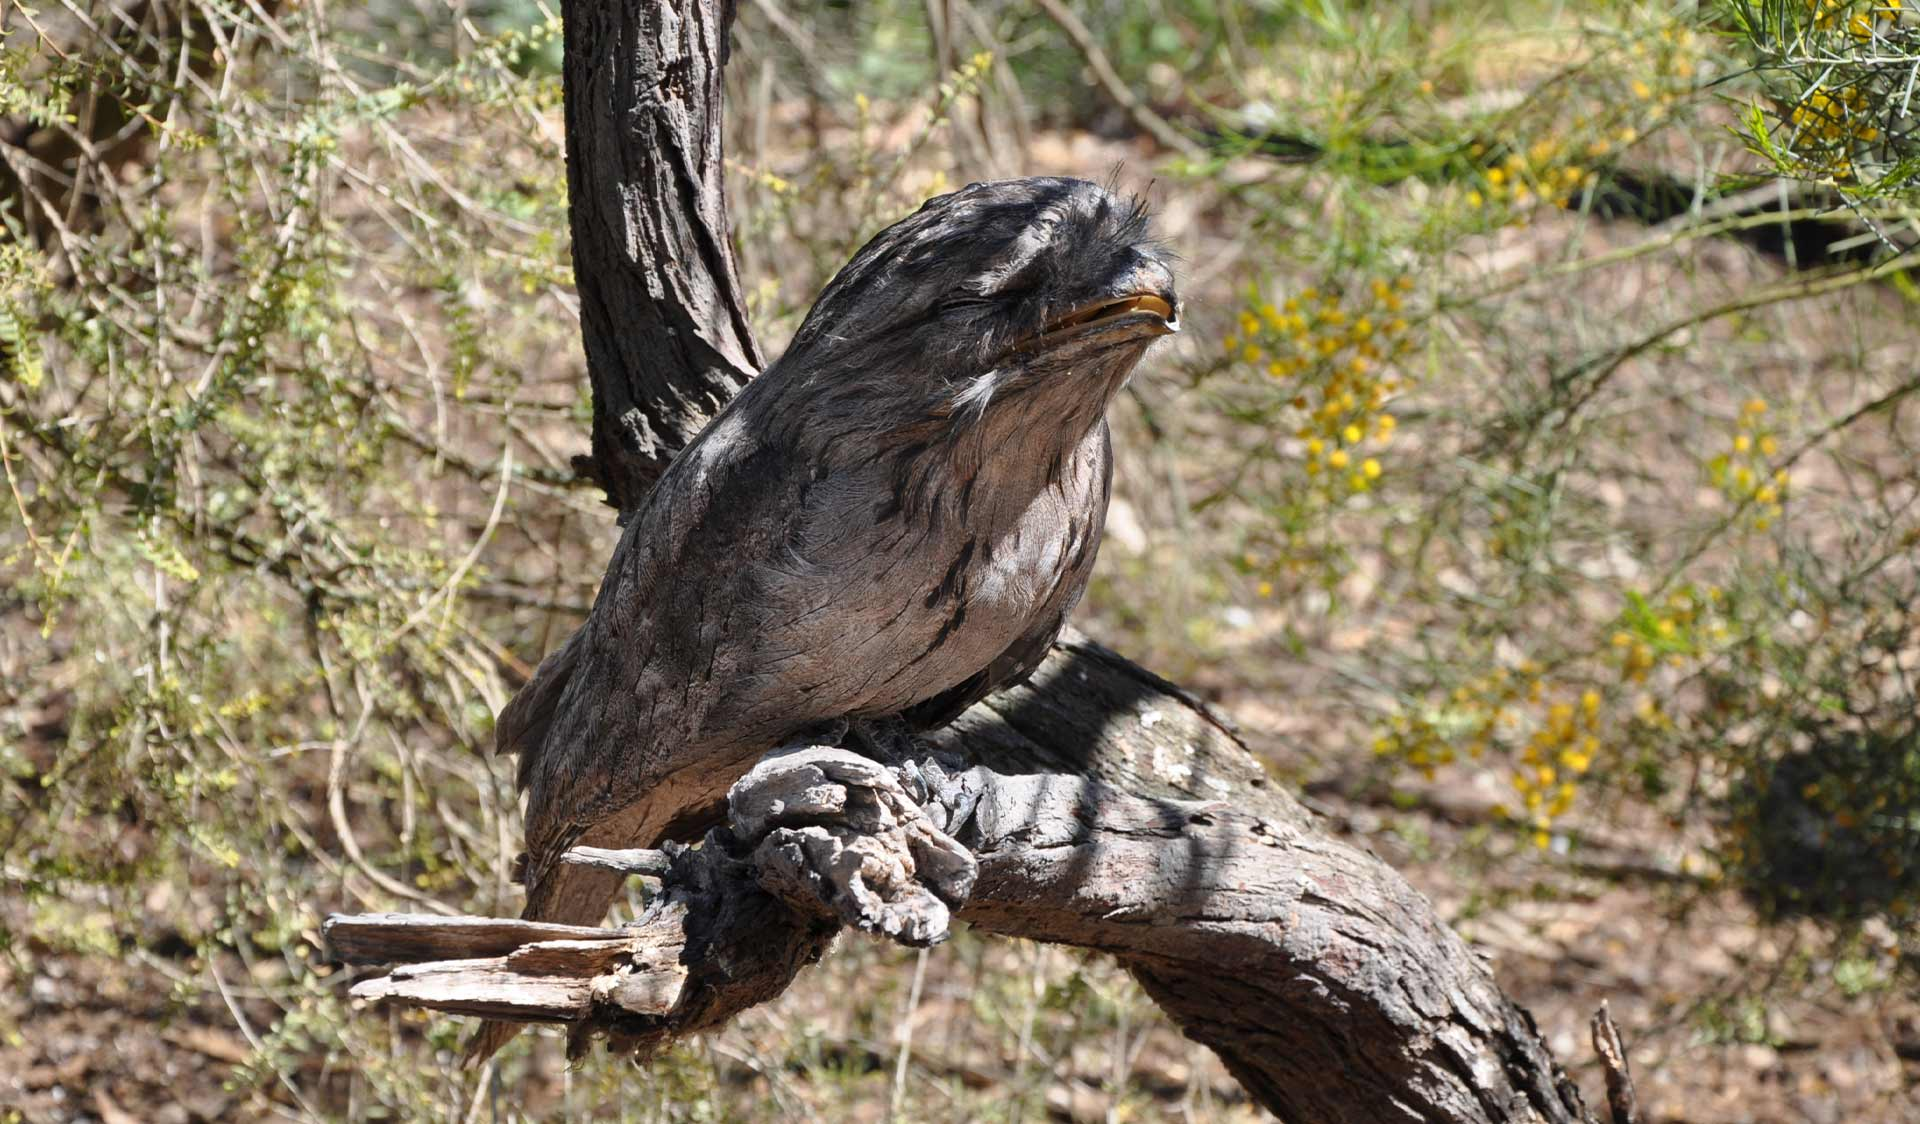 A tawny frogmouth perched on a branch